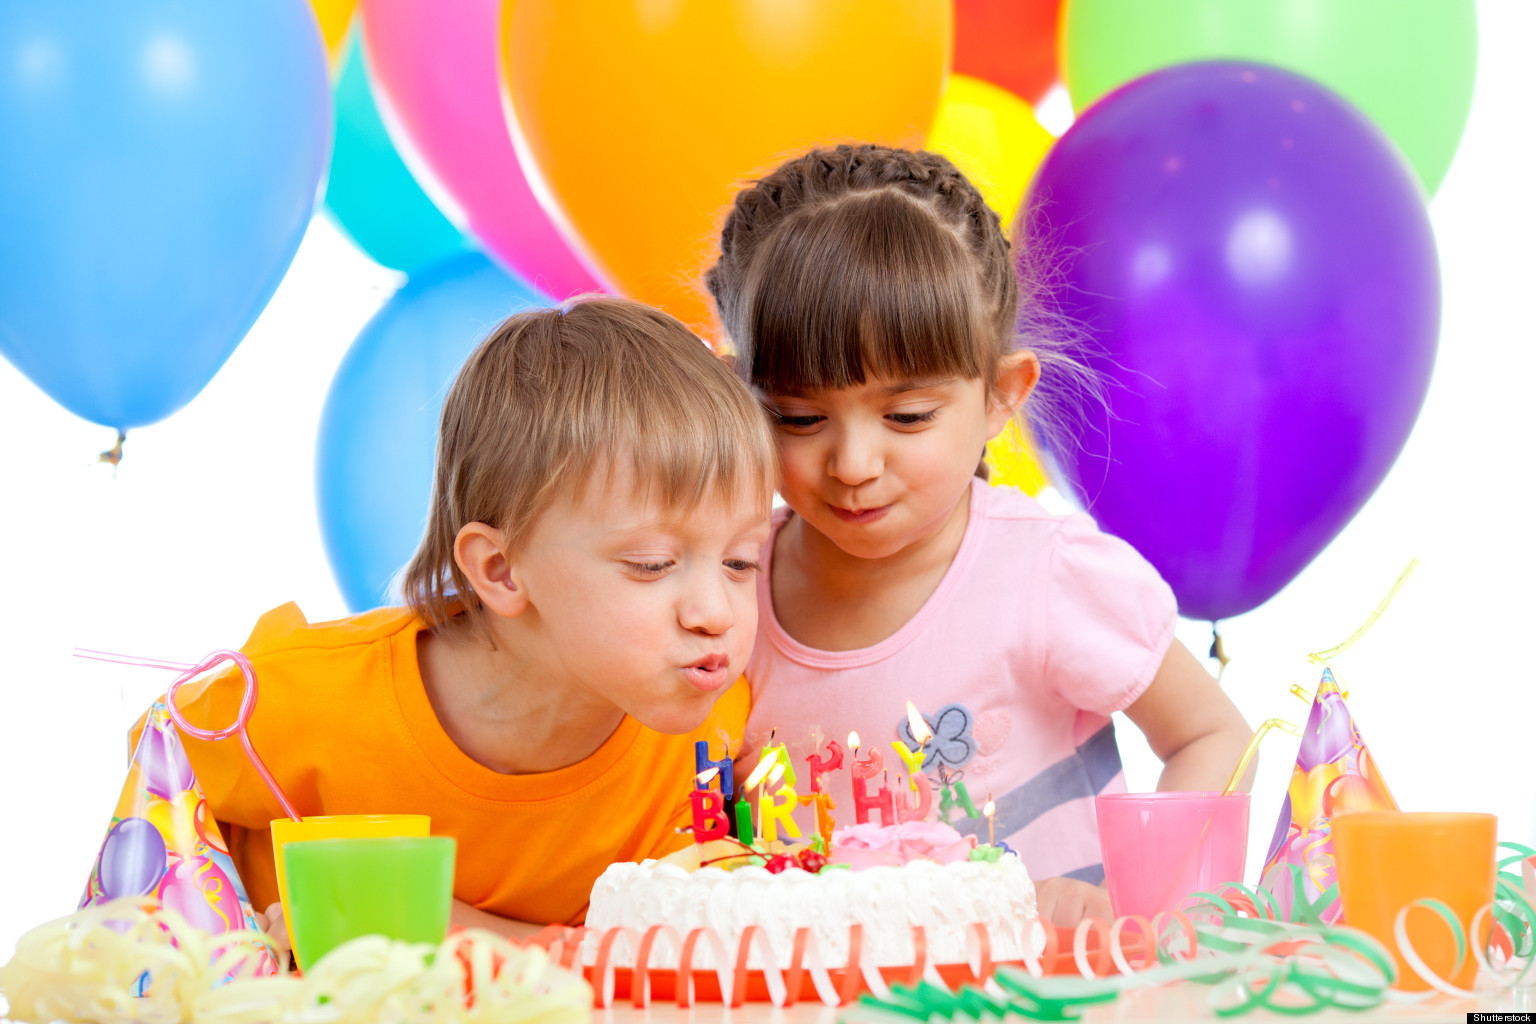 http://i.huffpost.com/gen/981480/images/o-BLOWING-OUT-BIRTHDAY-CANDLES-facebook.jpg